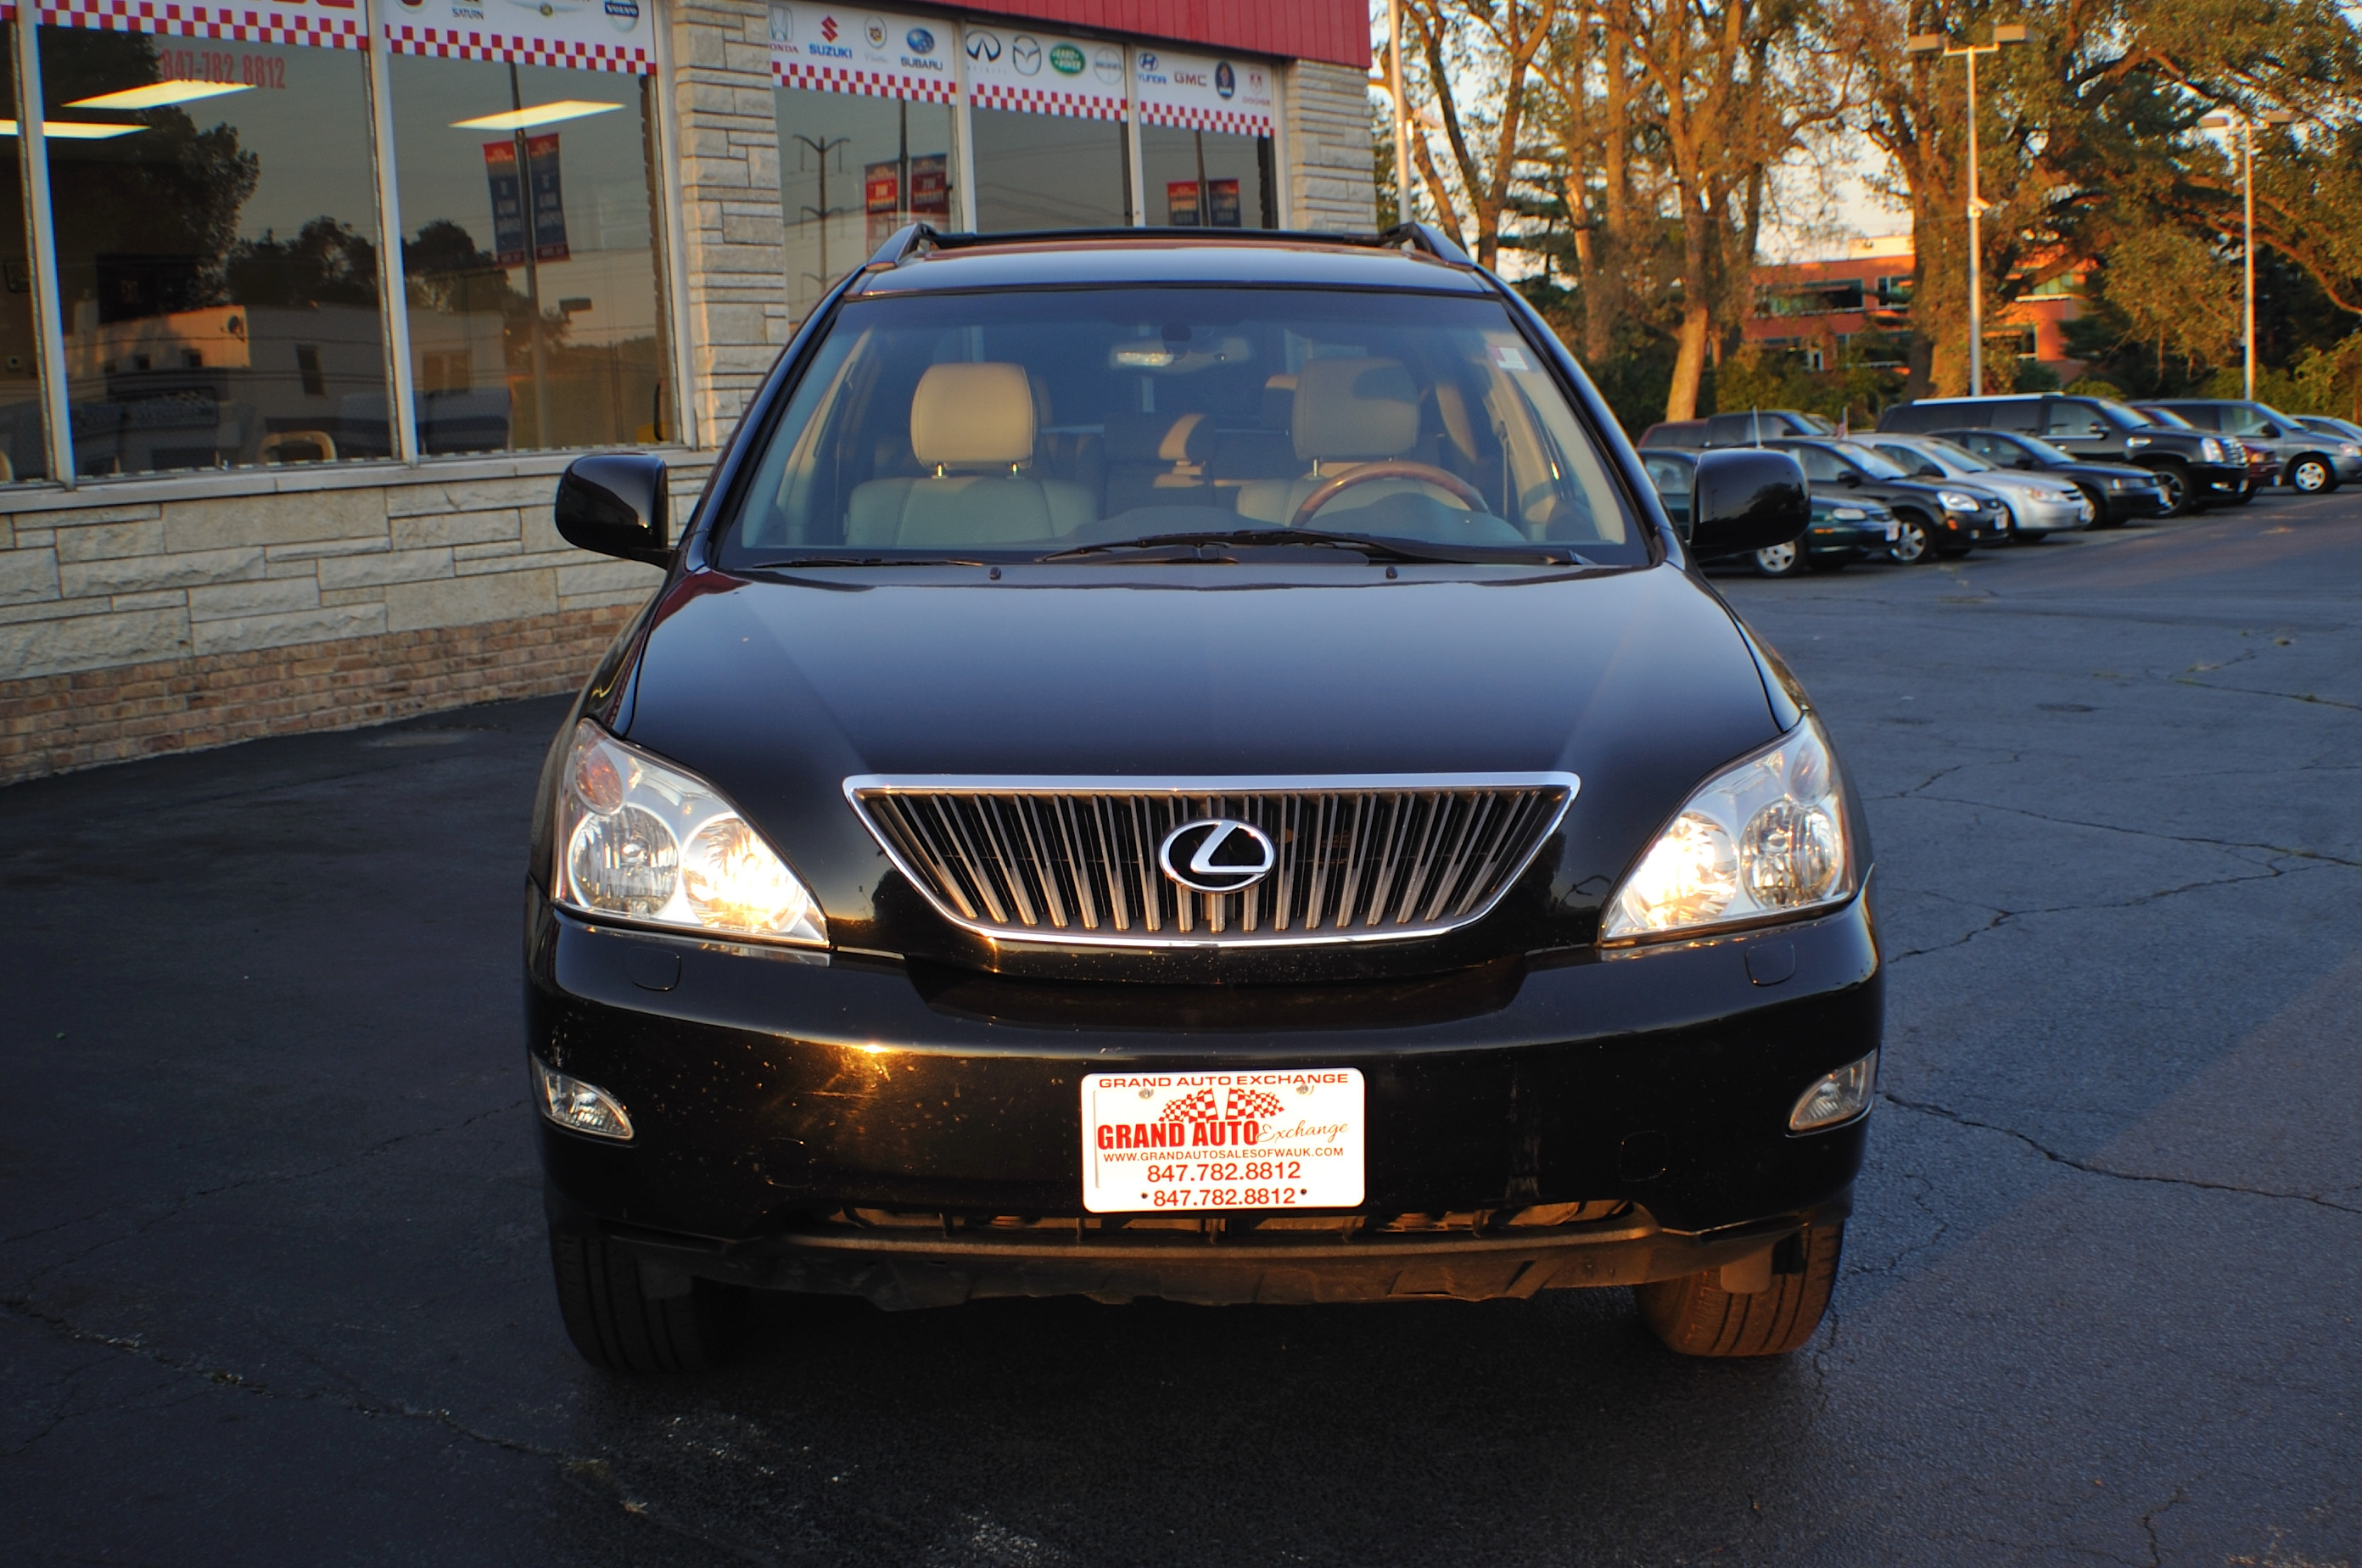 2004 Lexus RX330 Black SUV Car sale Kenosha Mchenry Bannockburn Barrington